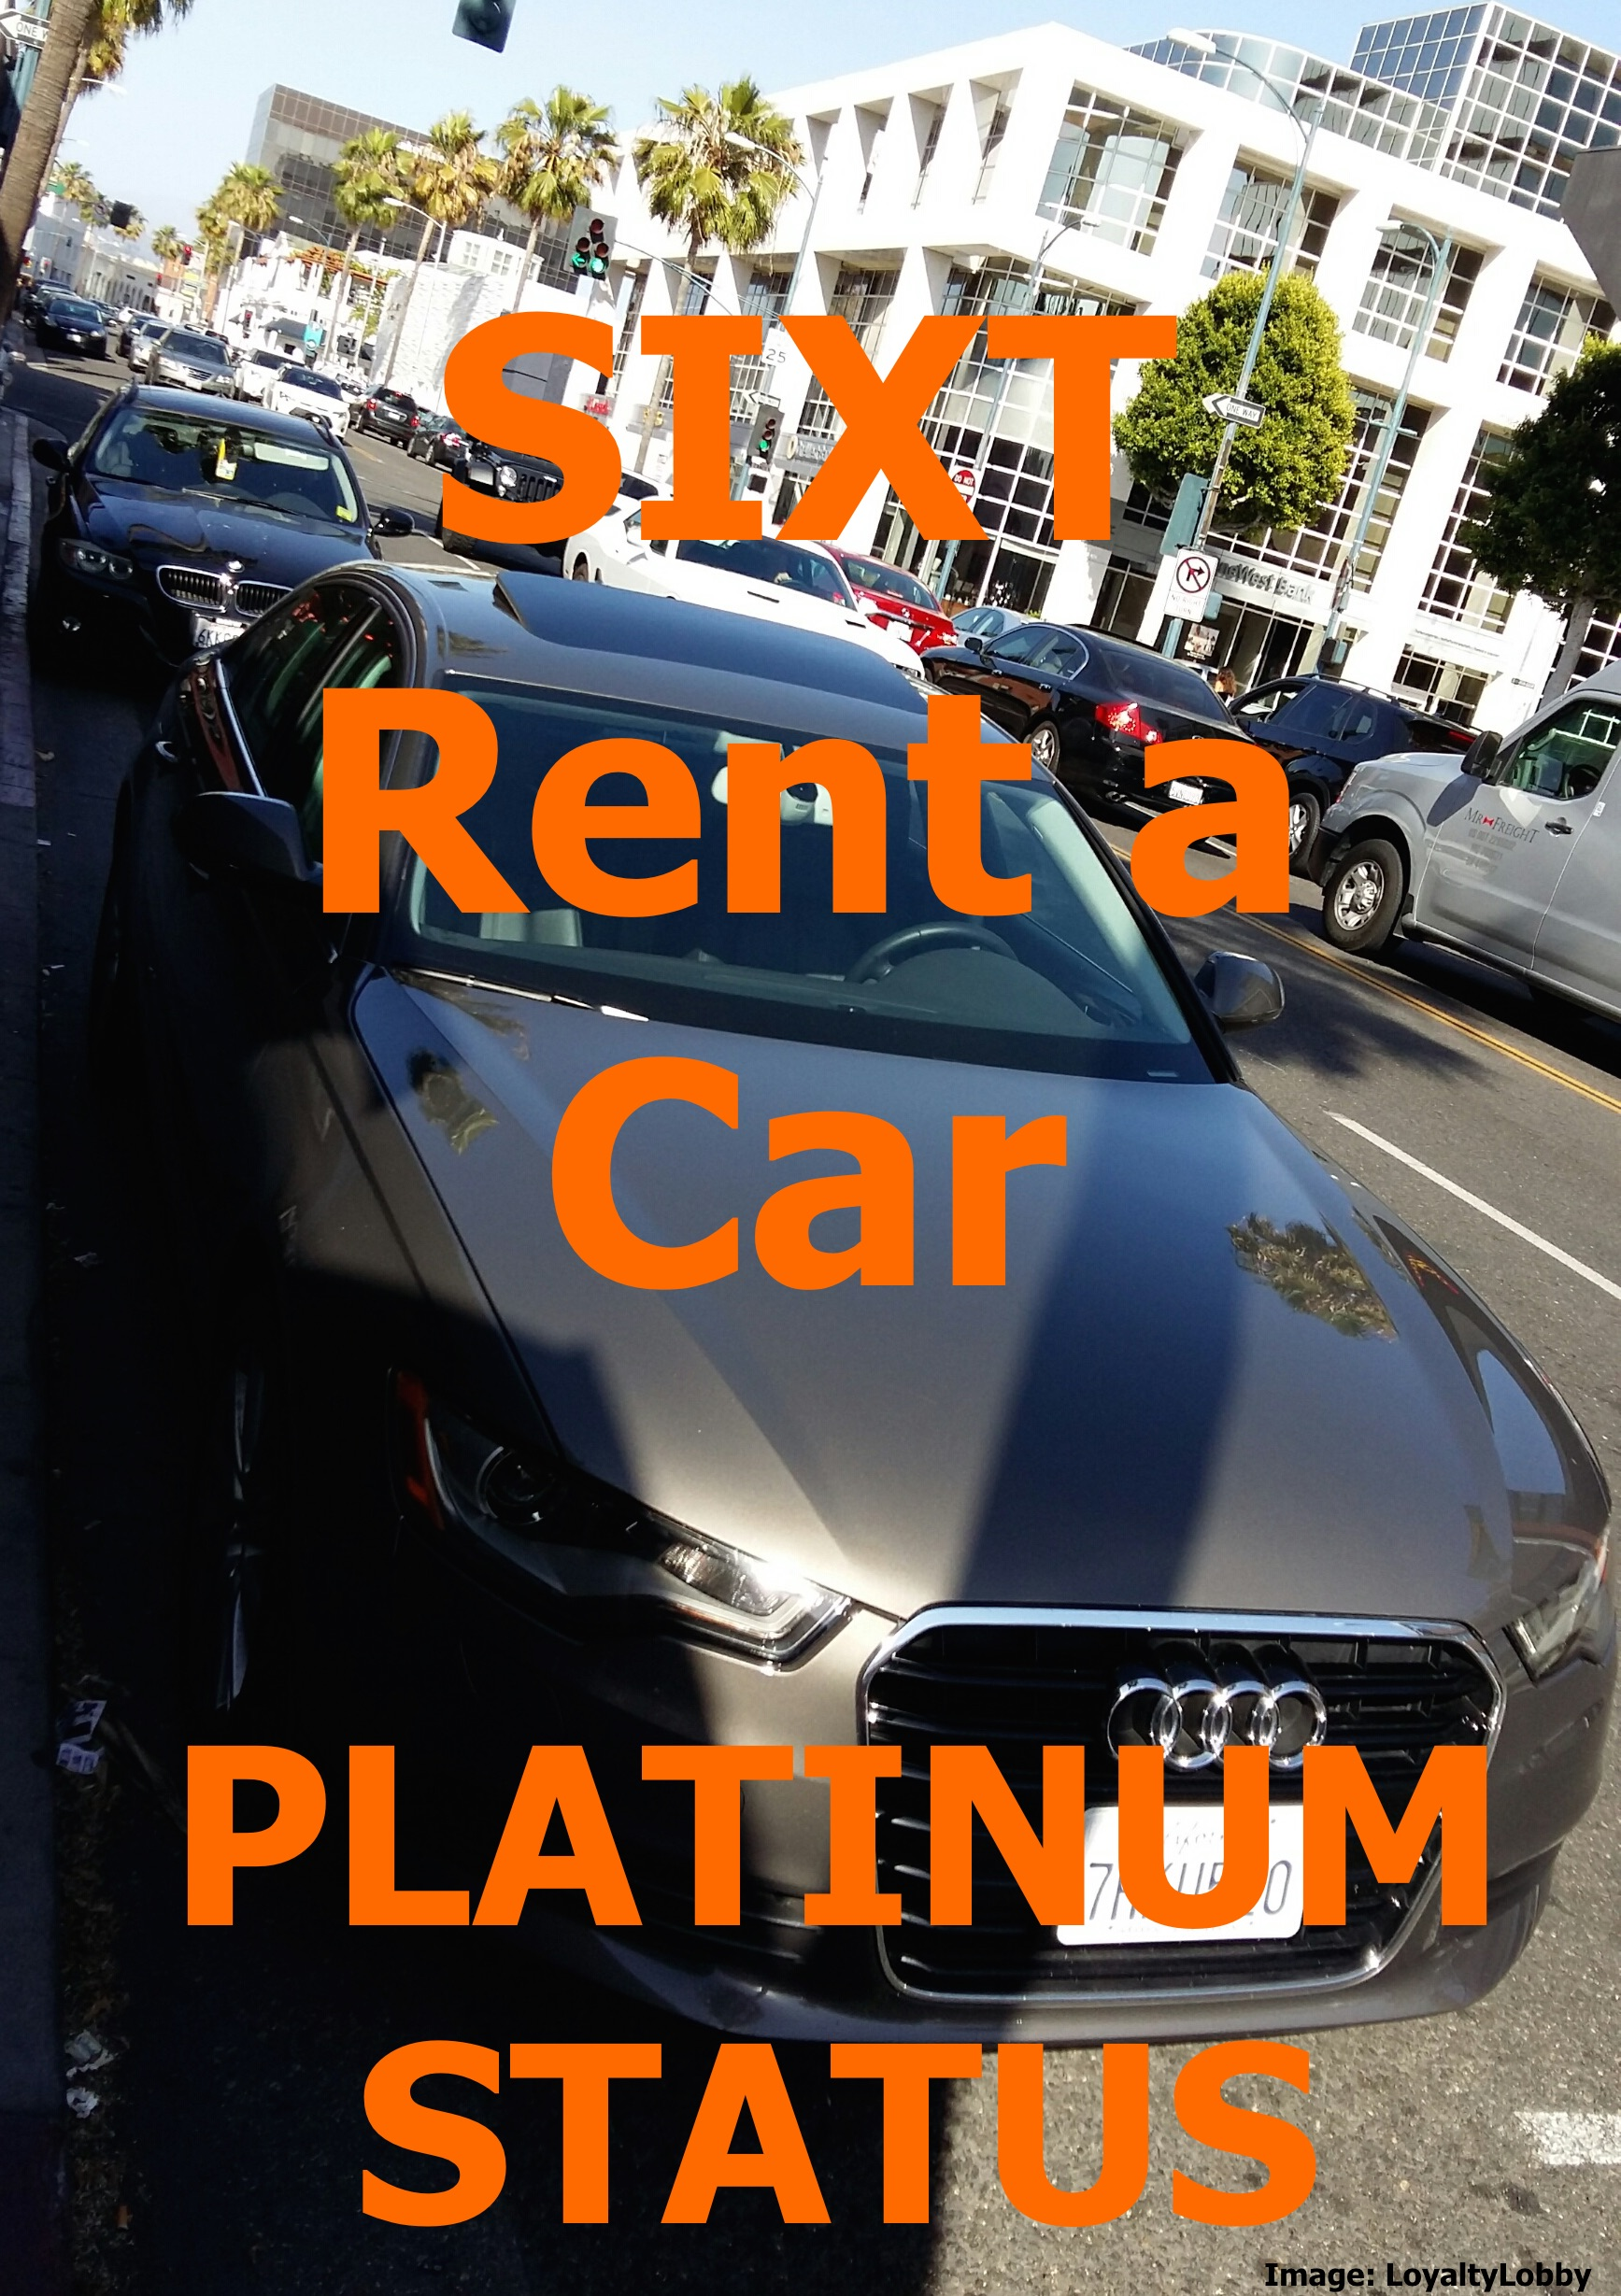 Sixt Car Rental >> Sixt Rent A Car: Free Platinum / Gold Status Match For Airline & Hotel Elite Customers ...